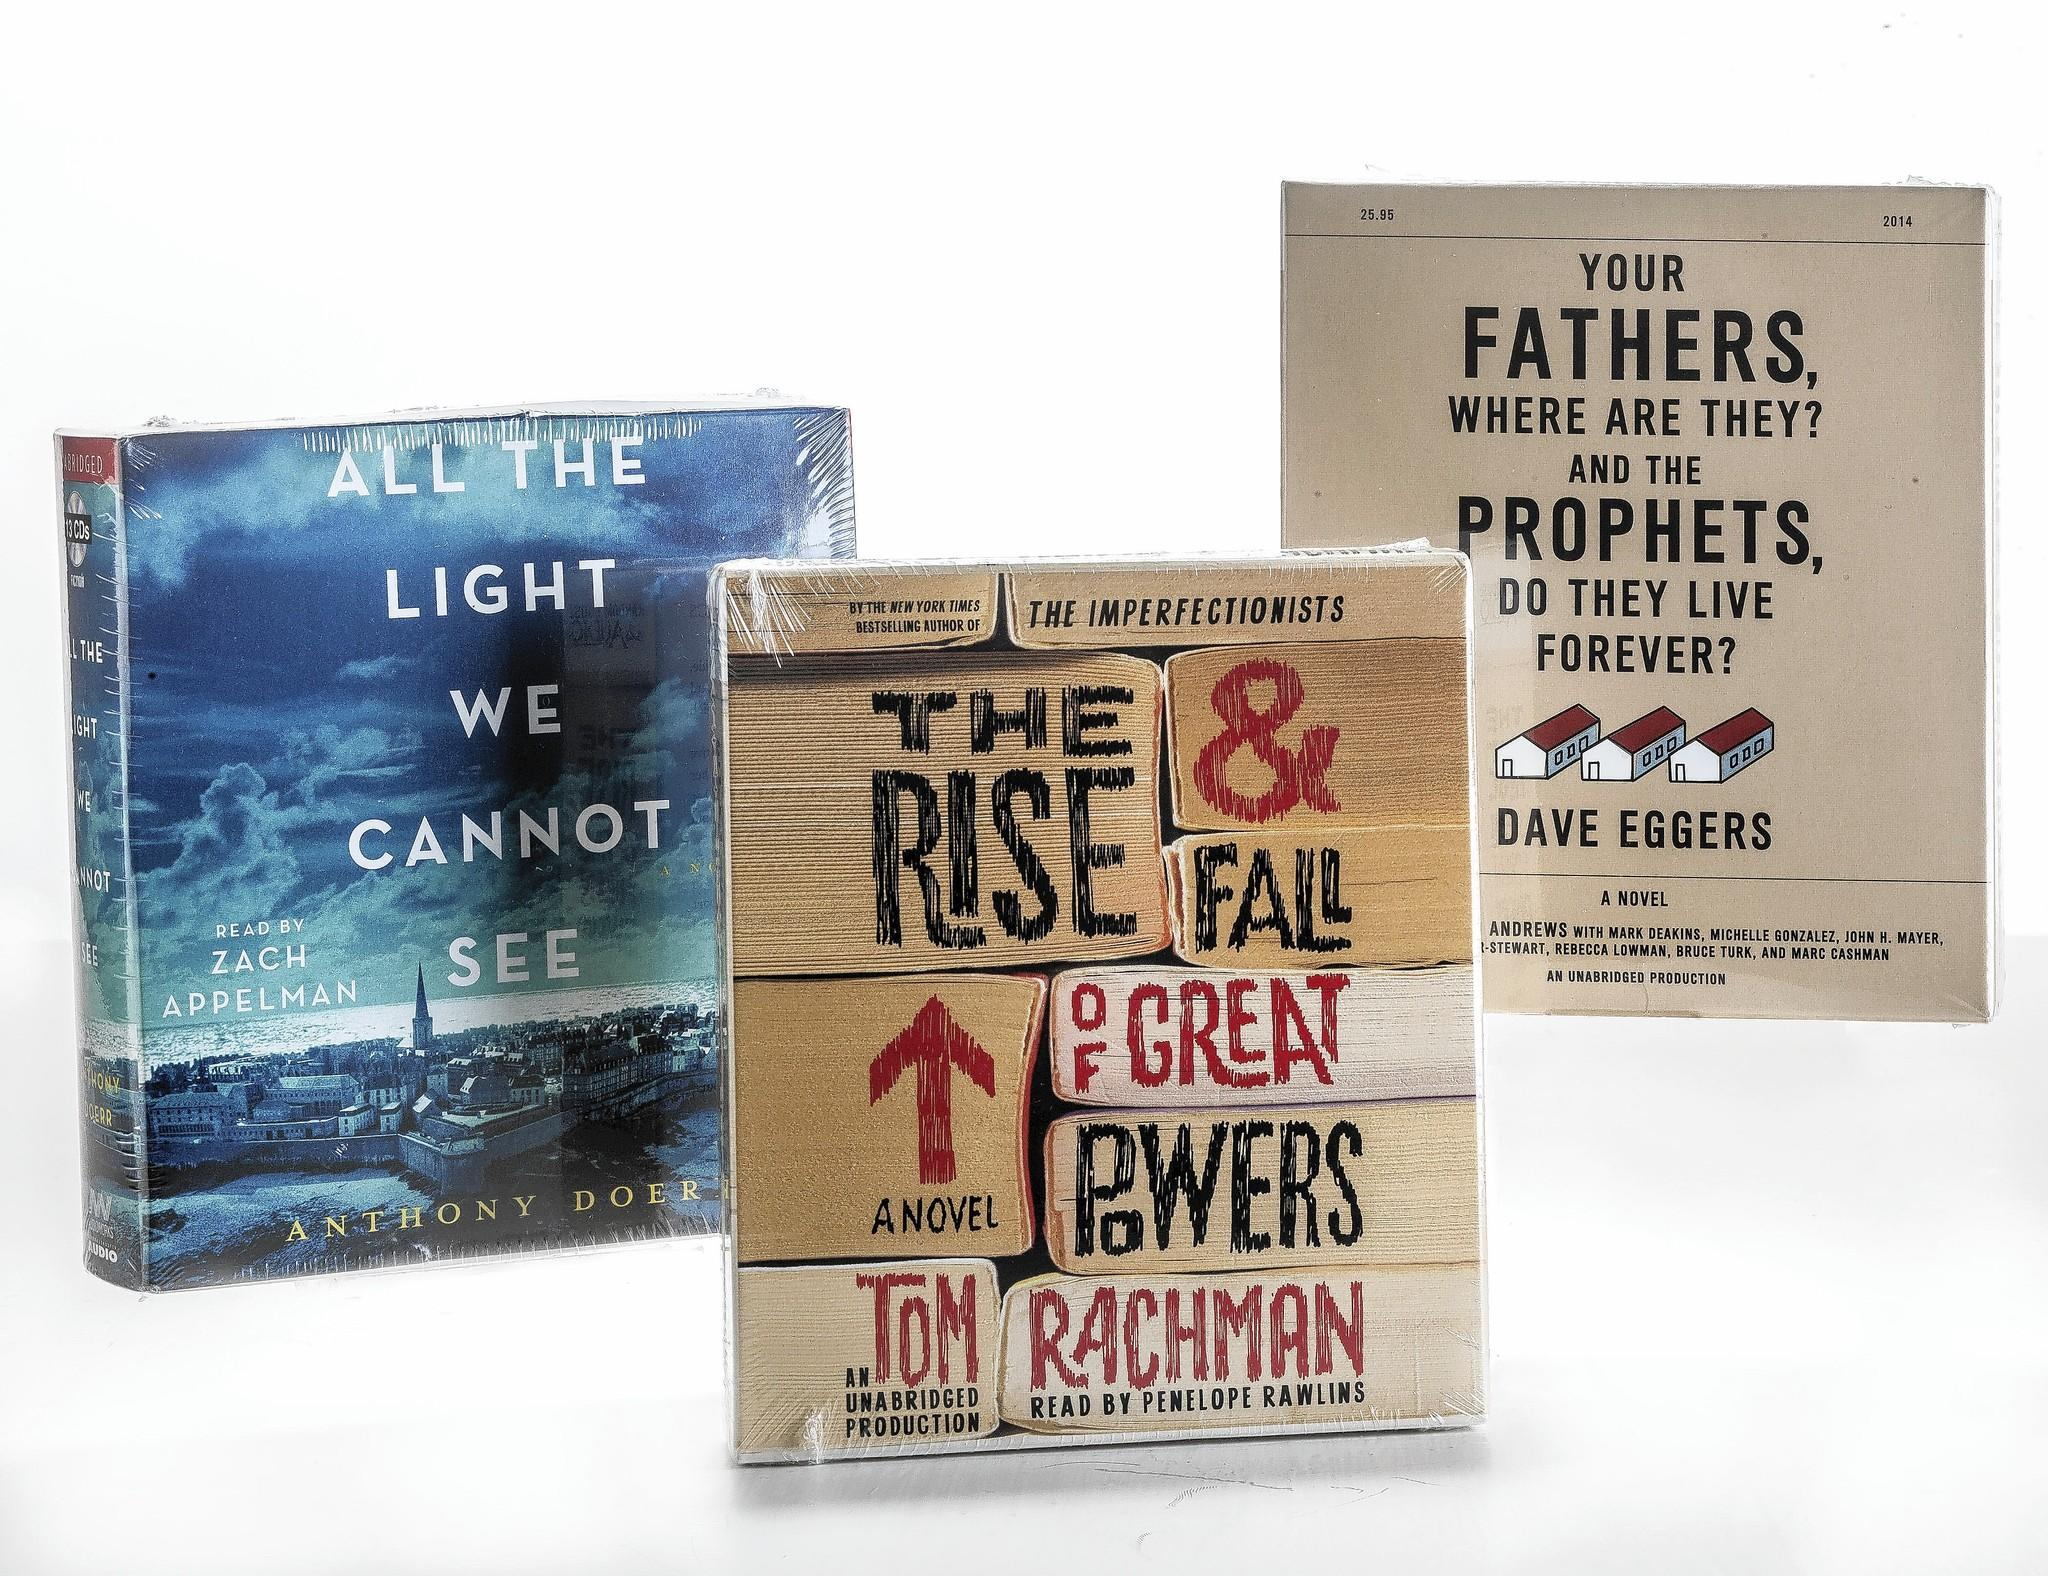 """""""All the Light We Cannot See"""" by Anthony Doerr, """"The Rise & Fall of Great Powers"""" by Tom Rachman, and """"Your Fathers, Where Are They? And the Prophets, Do They Live Forever?"""" by Dave Eggers are three recent audiobook releases."""